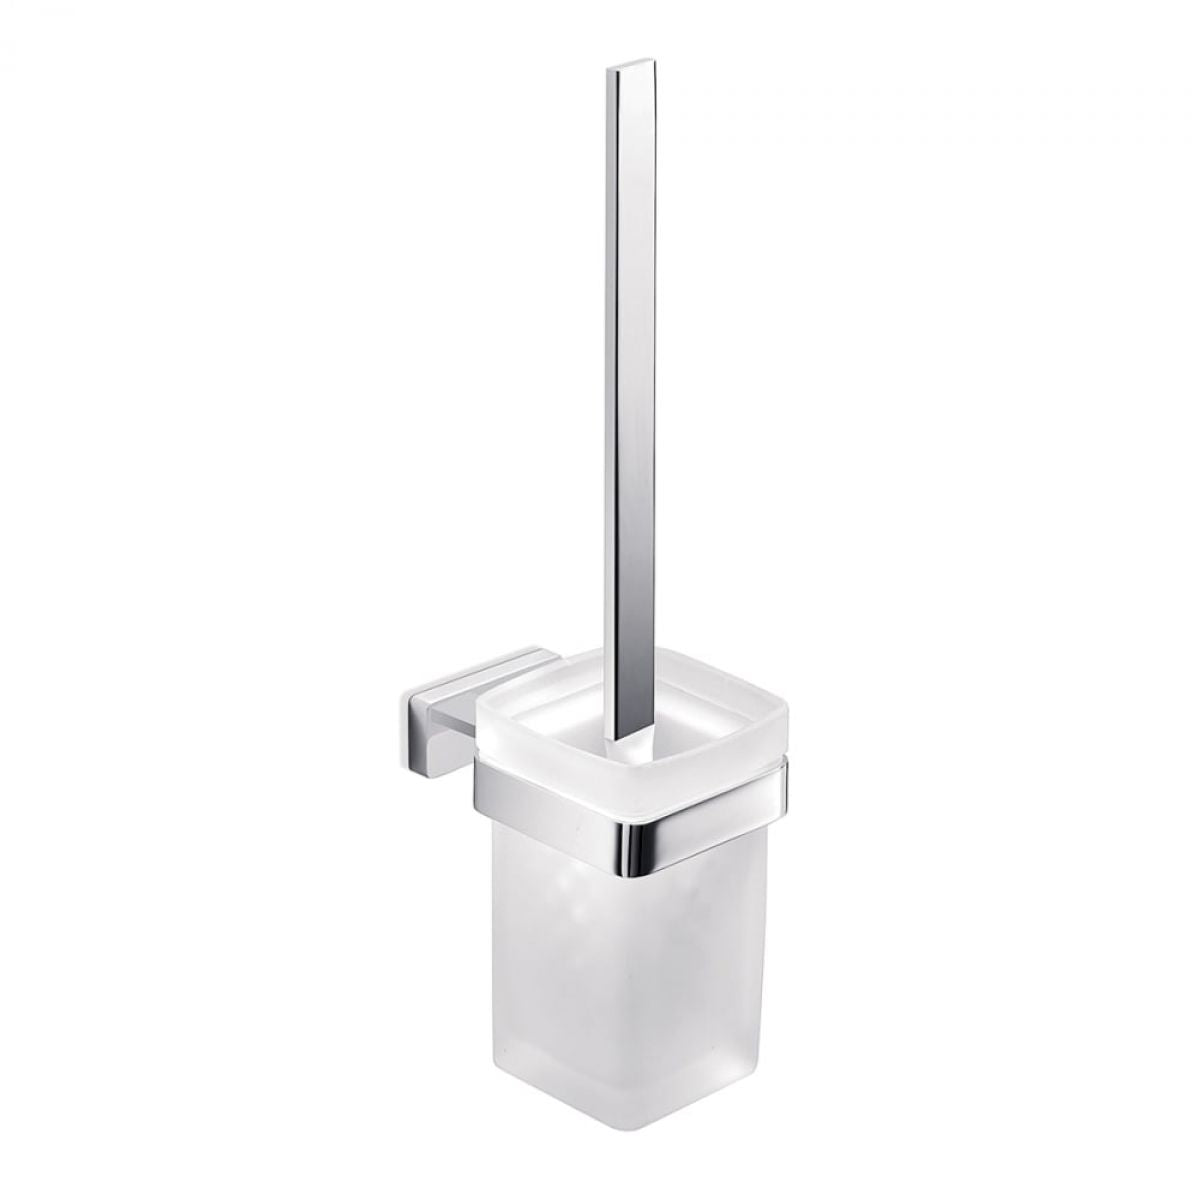 Inda Lea Wall Mounted Toilet Brush & Holder - Blue Sky Bathrooms Ltd